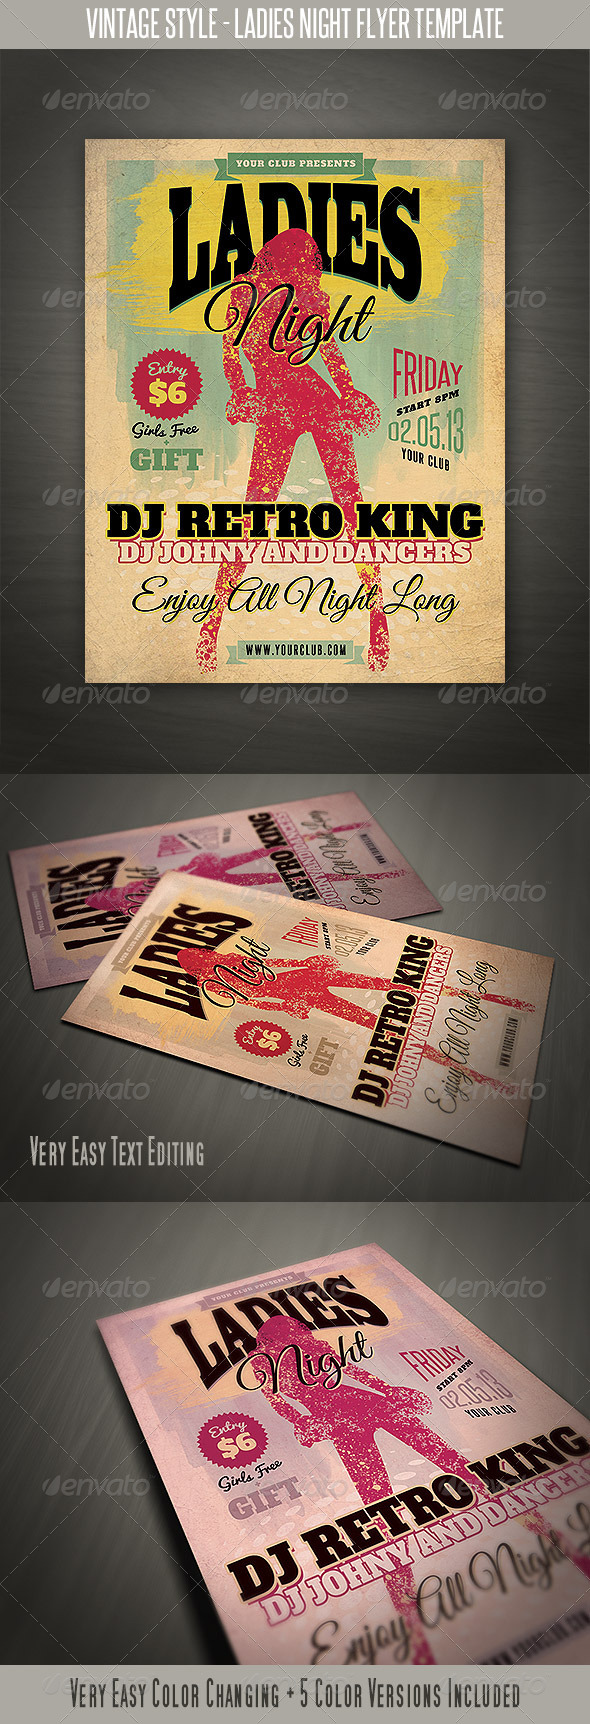 GraphicRiver Vintage Style Ladies Night Flyer 4094308